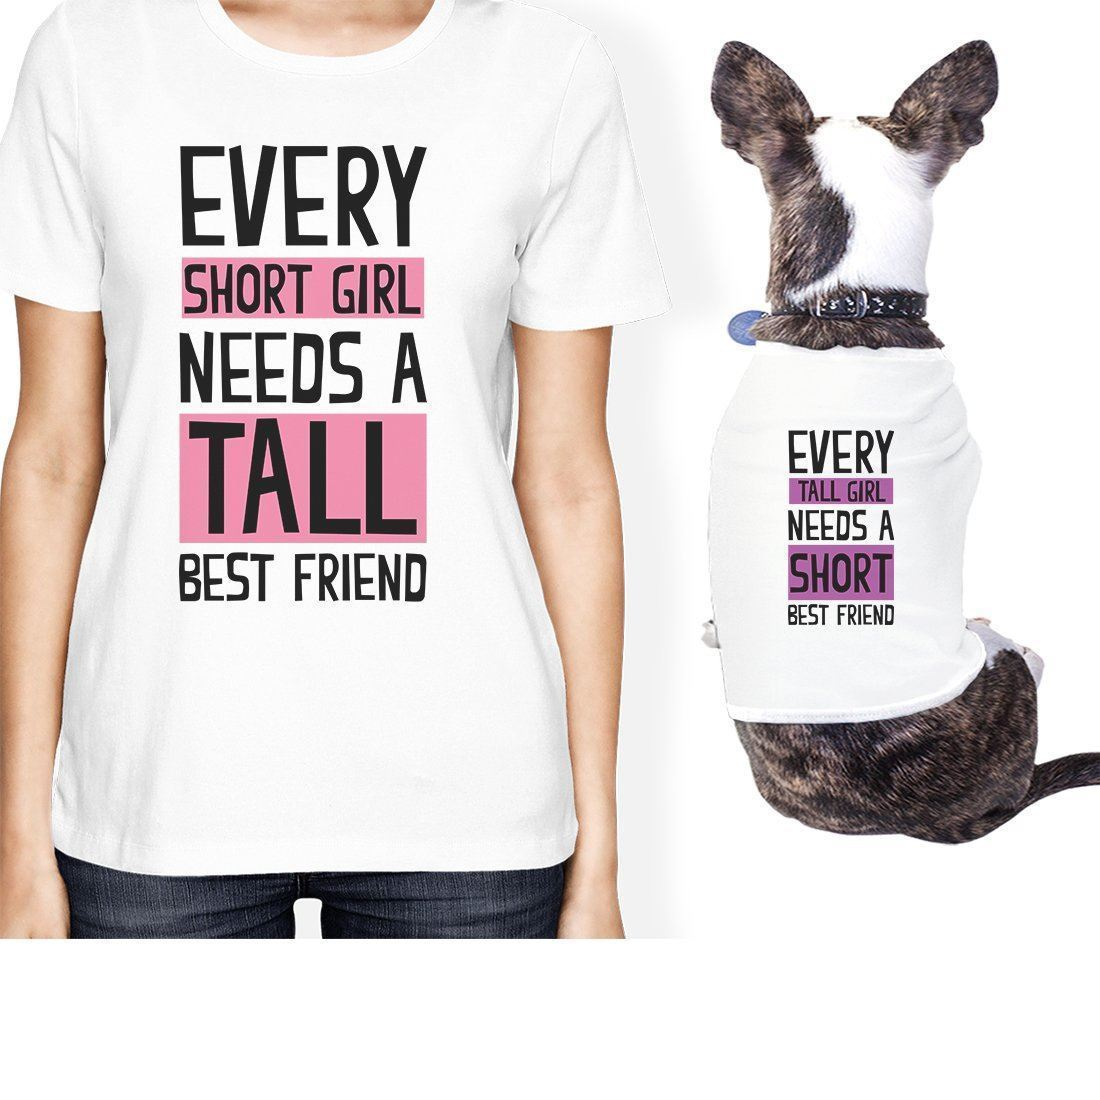 Tall Short Friend Small Pet Owner Matching Gift Outfits For Dog Mom